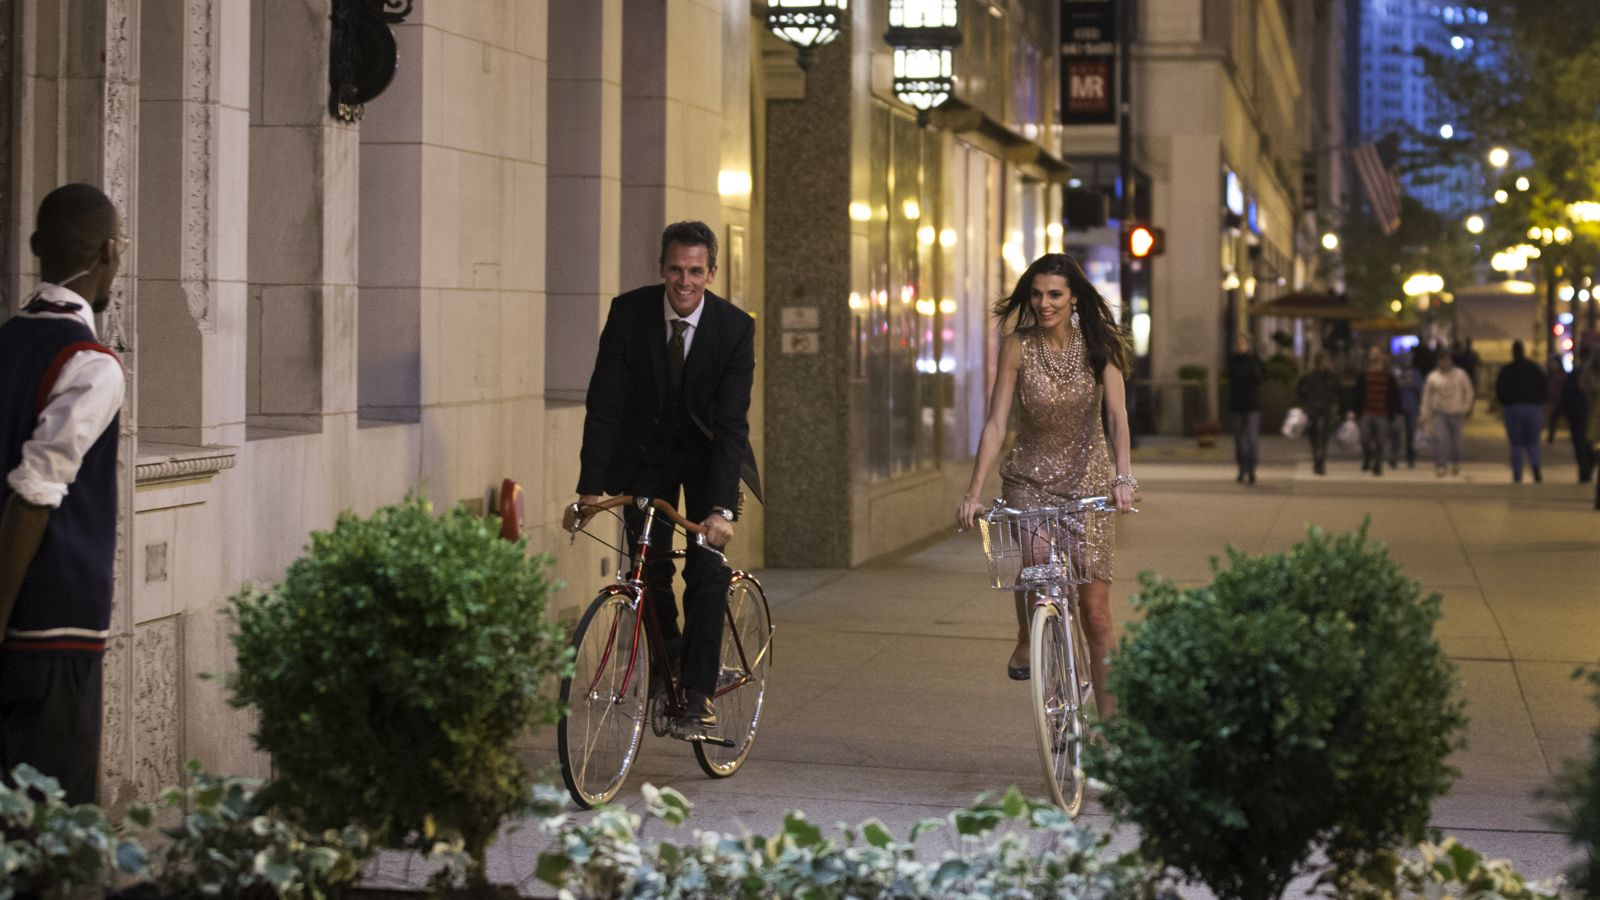 Chicago Athletic Association Lifestyle_Exterior_Couple_Bicycles_3_Thomas Shelby